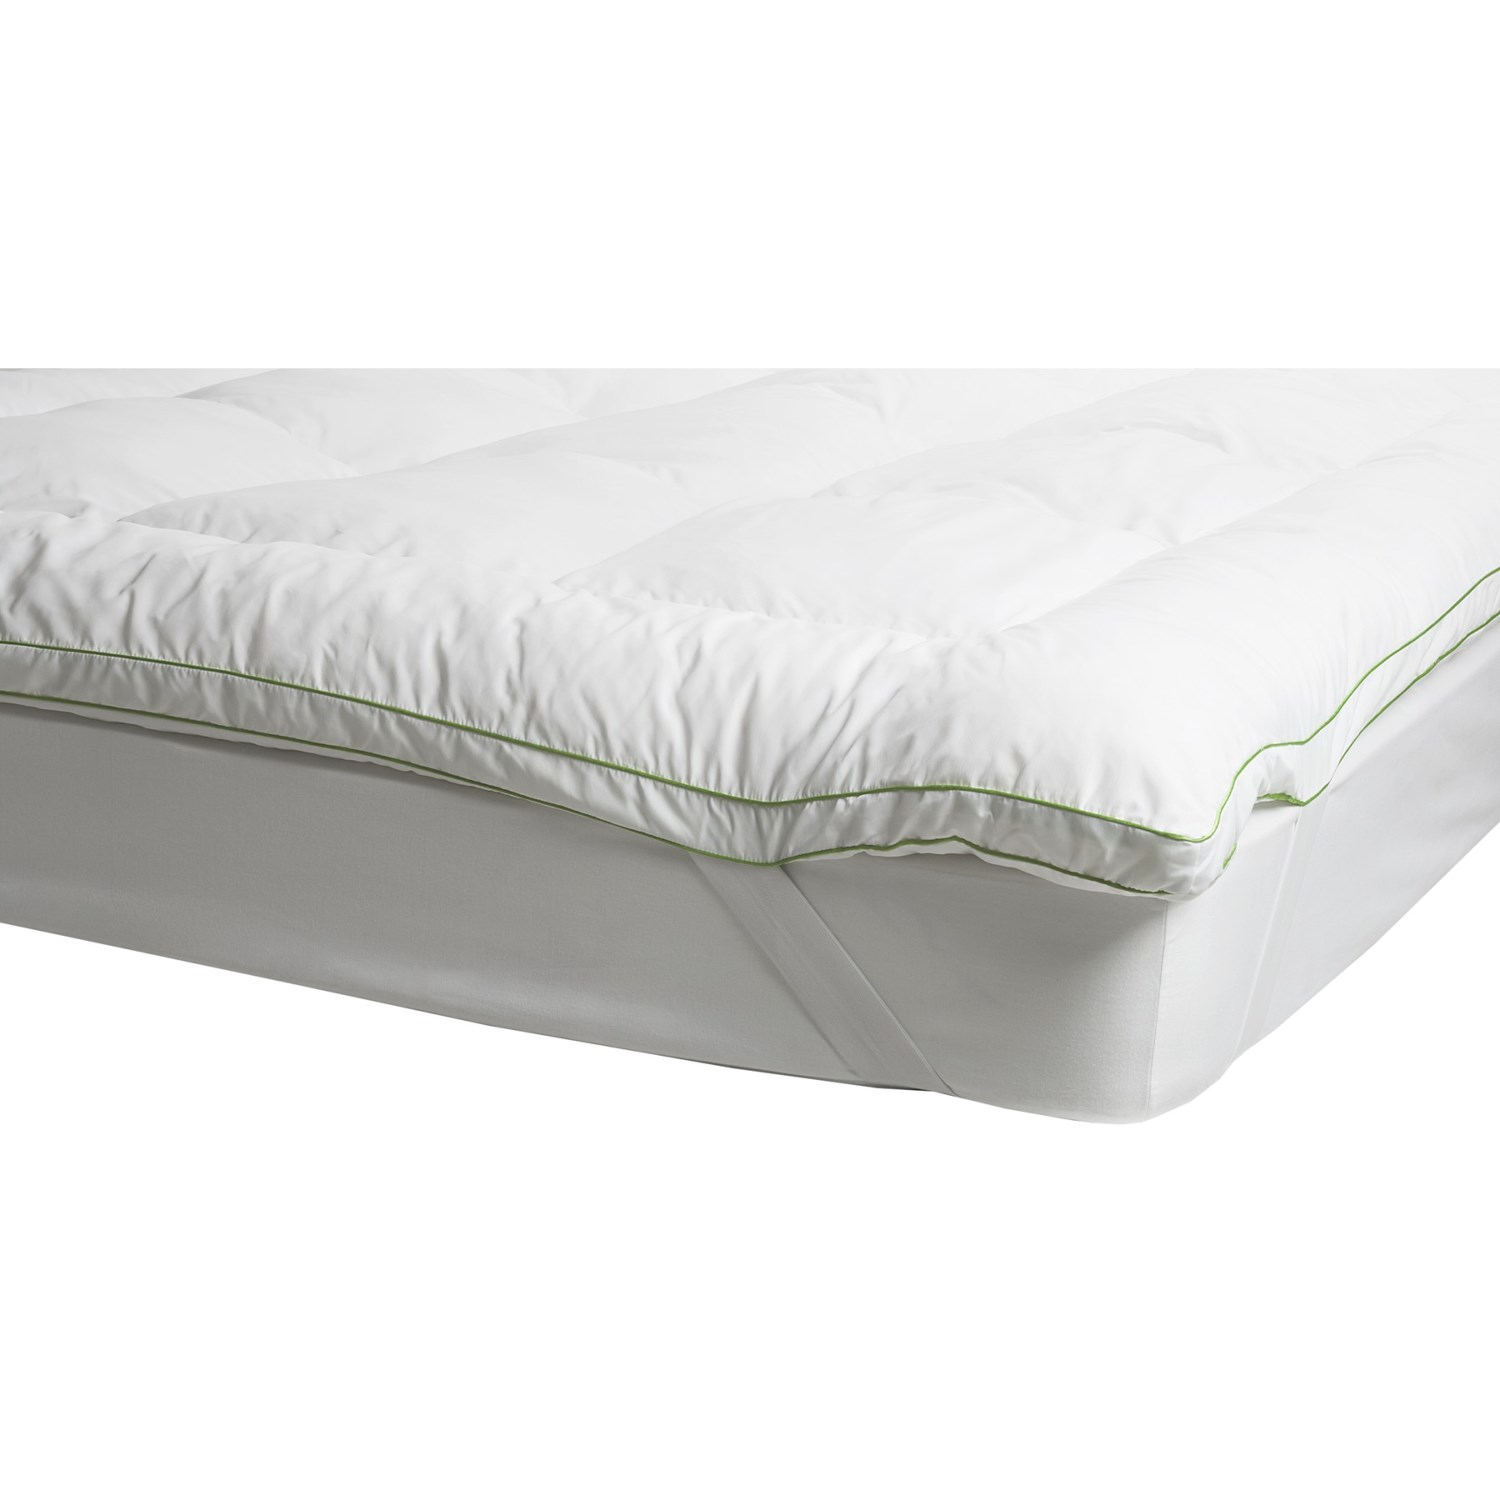 Mattress Toppers submited images